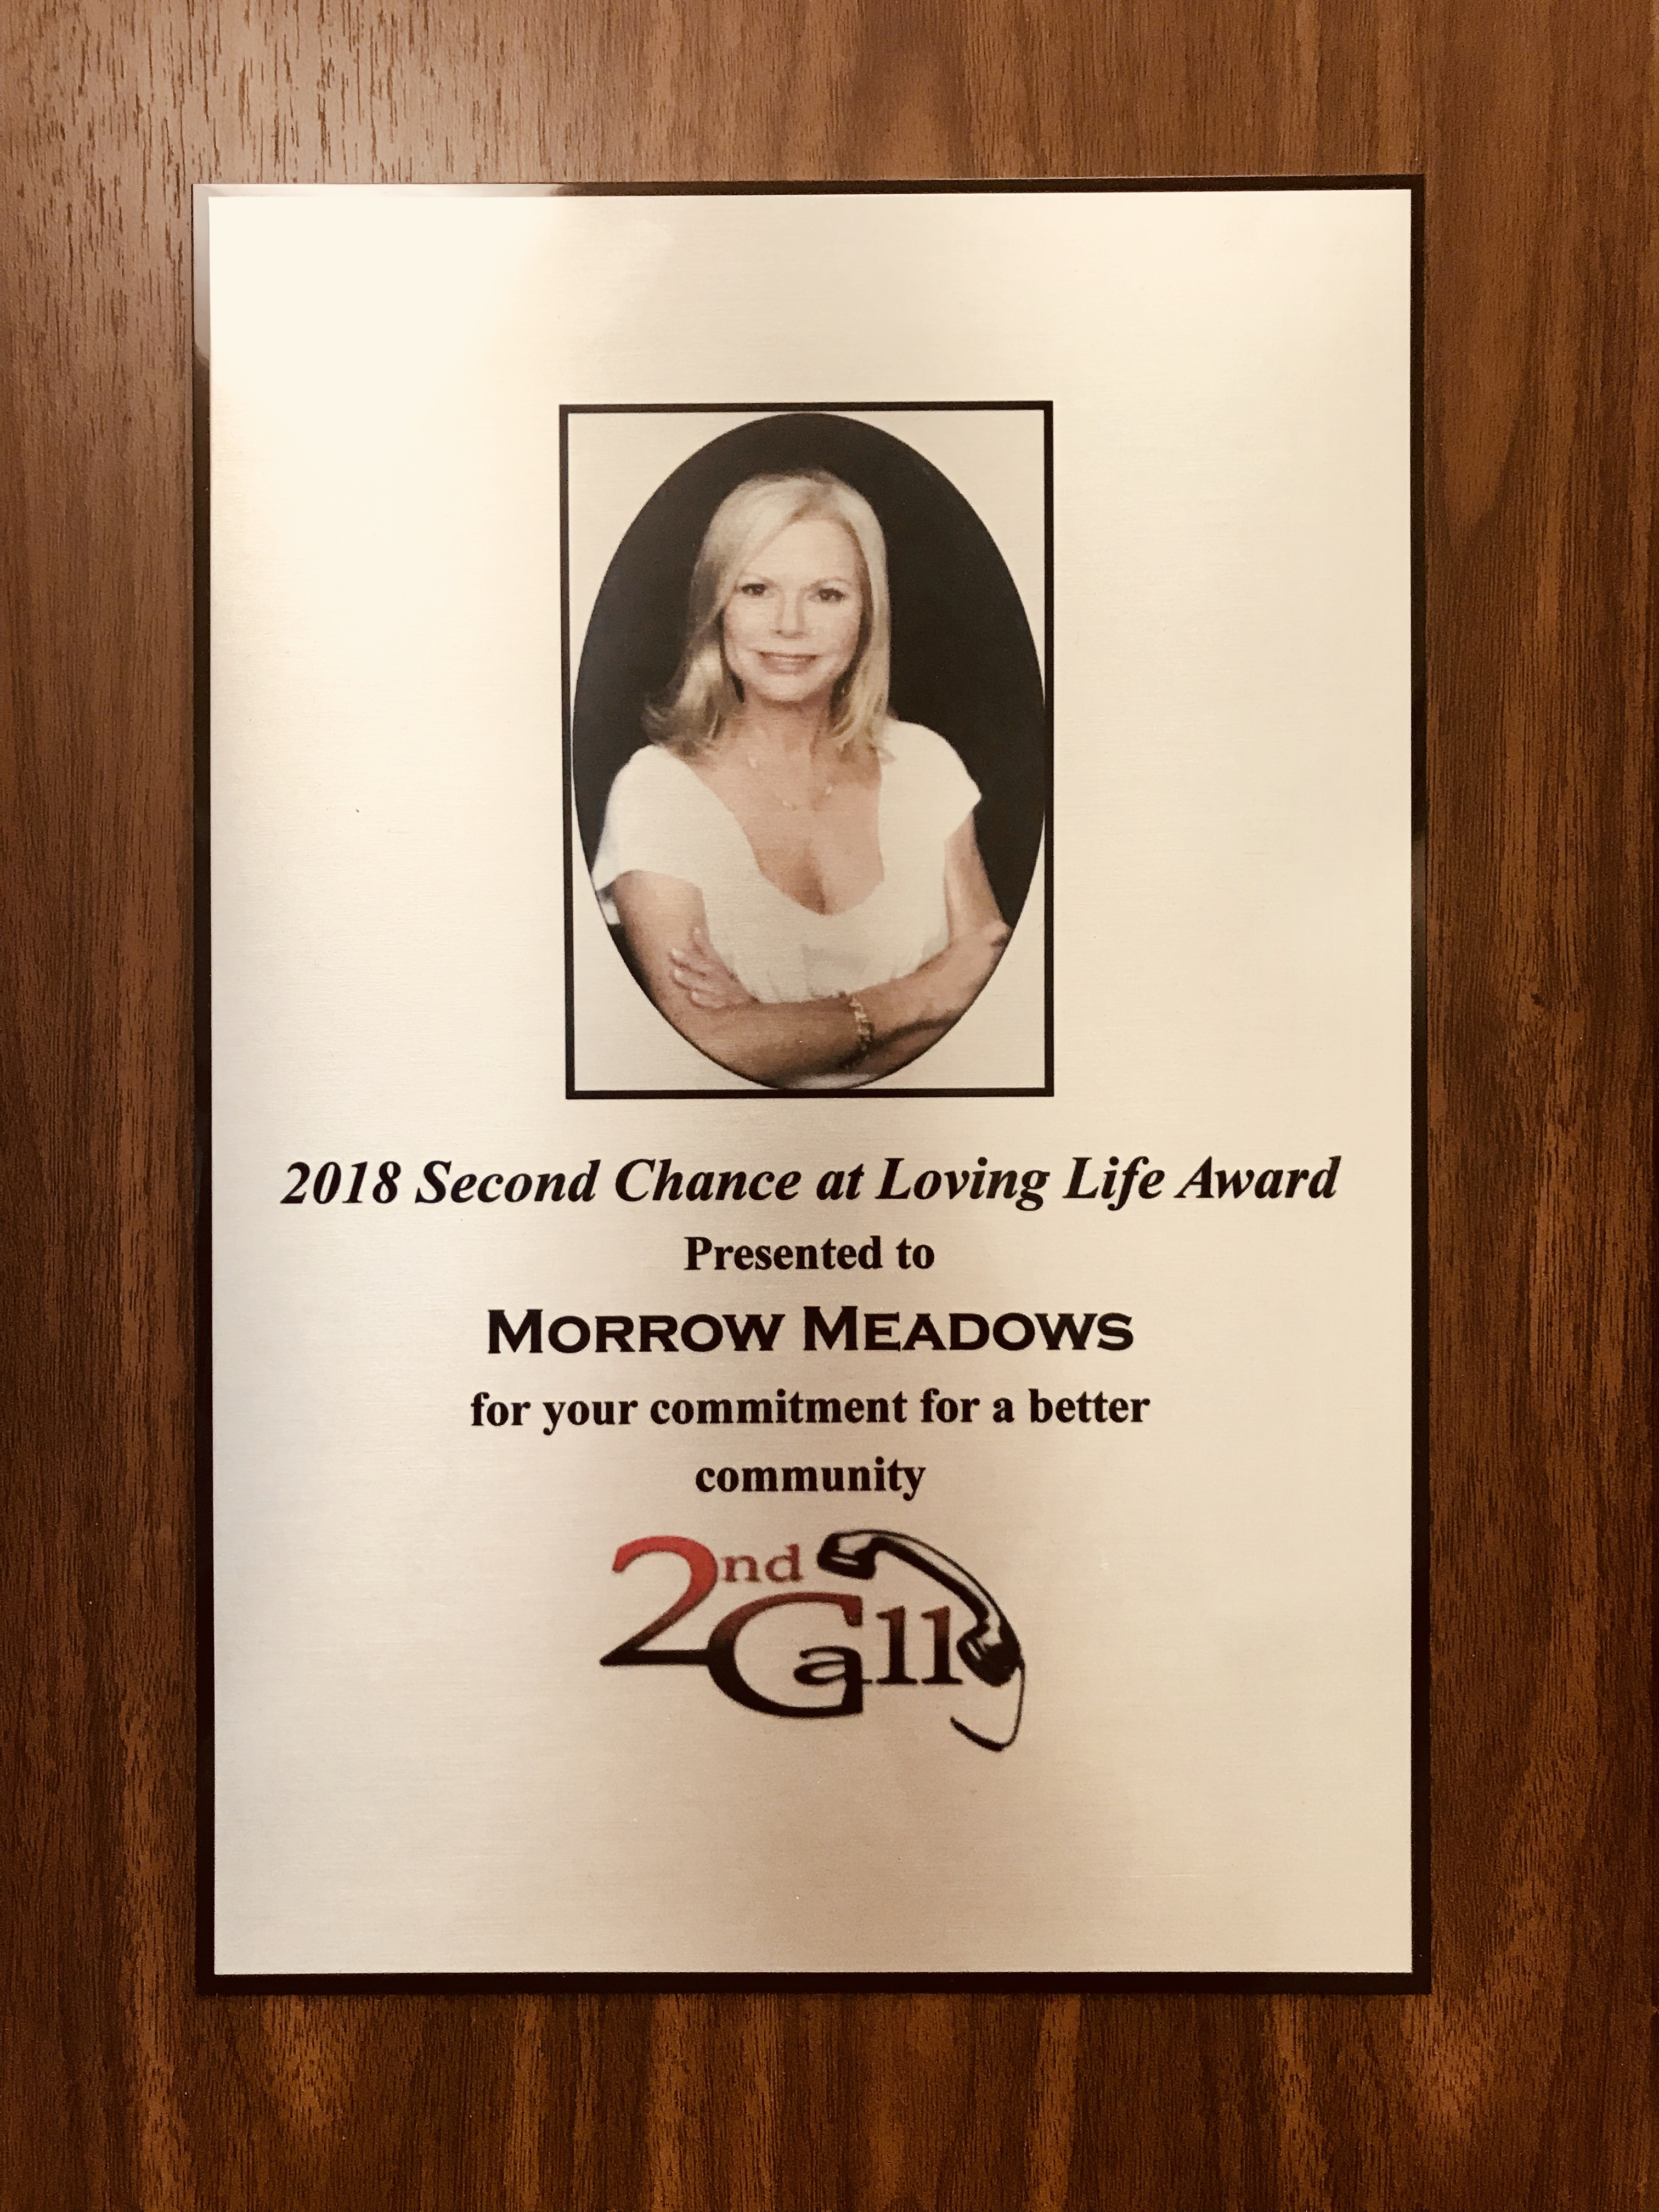 2018-2nd-call-annual-gala-news